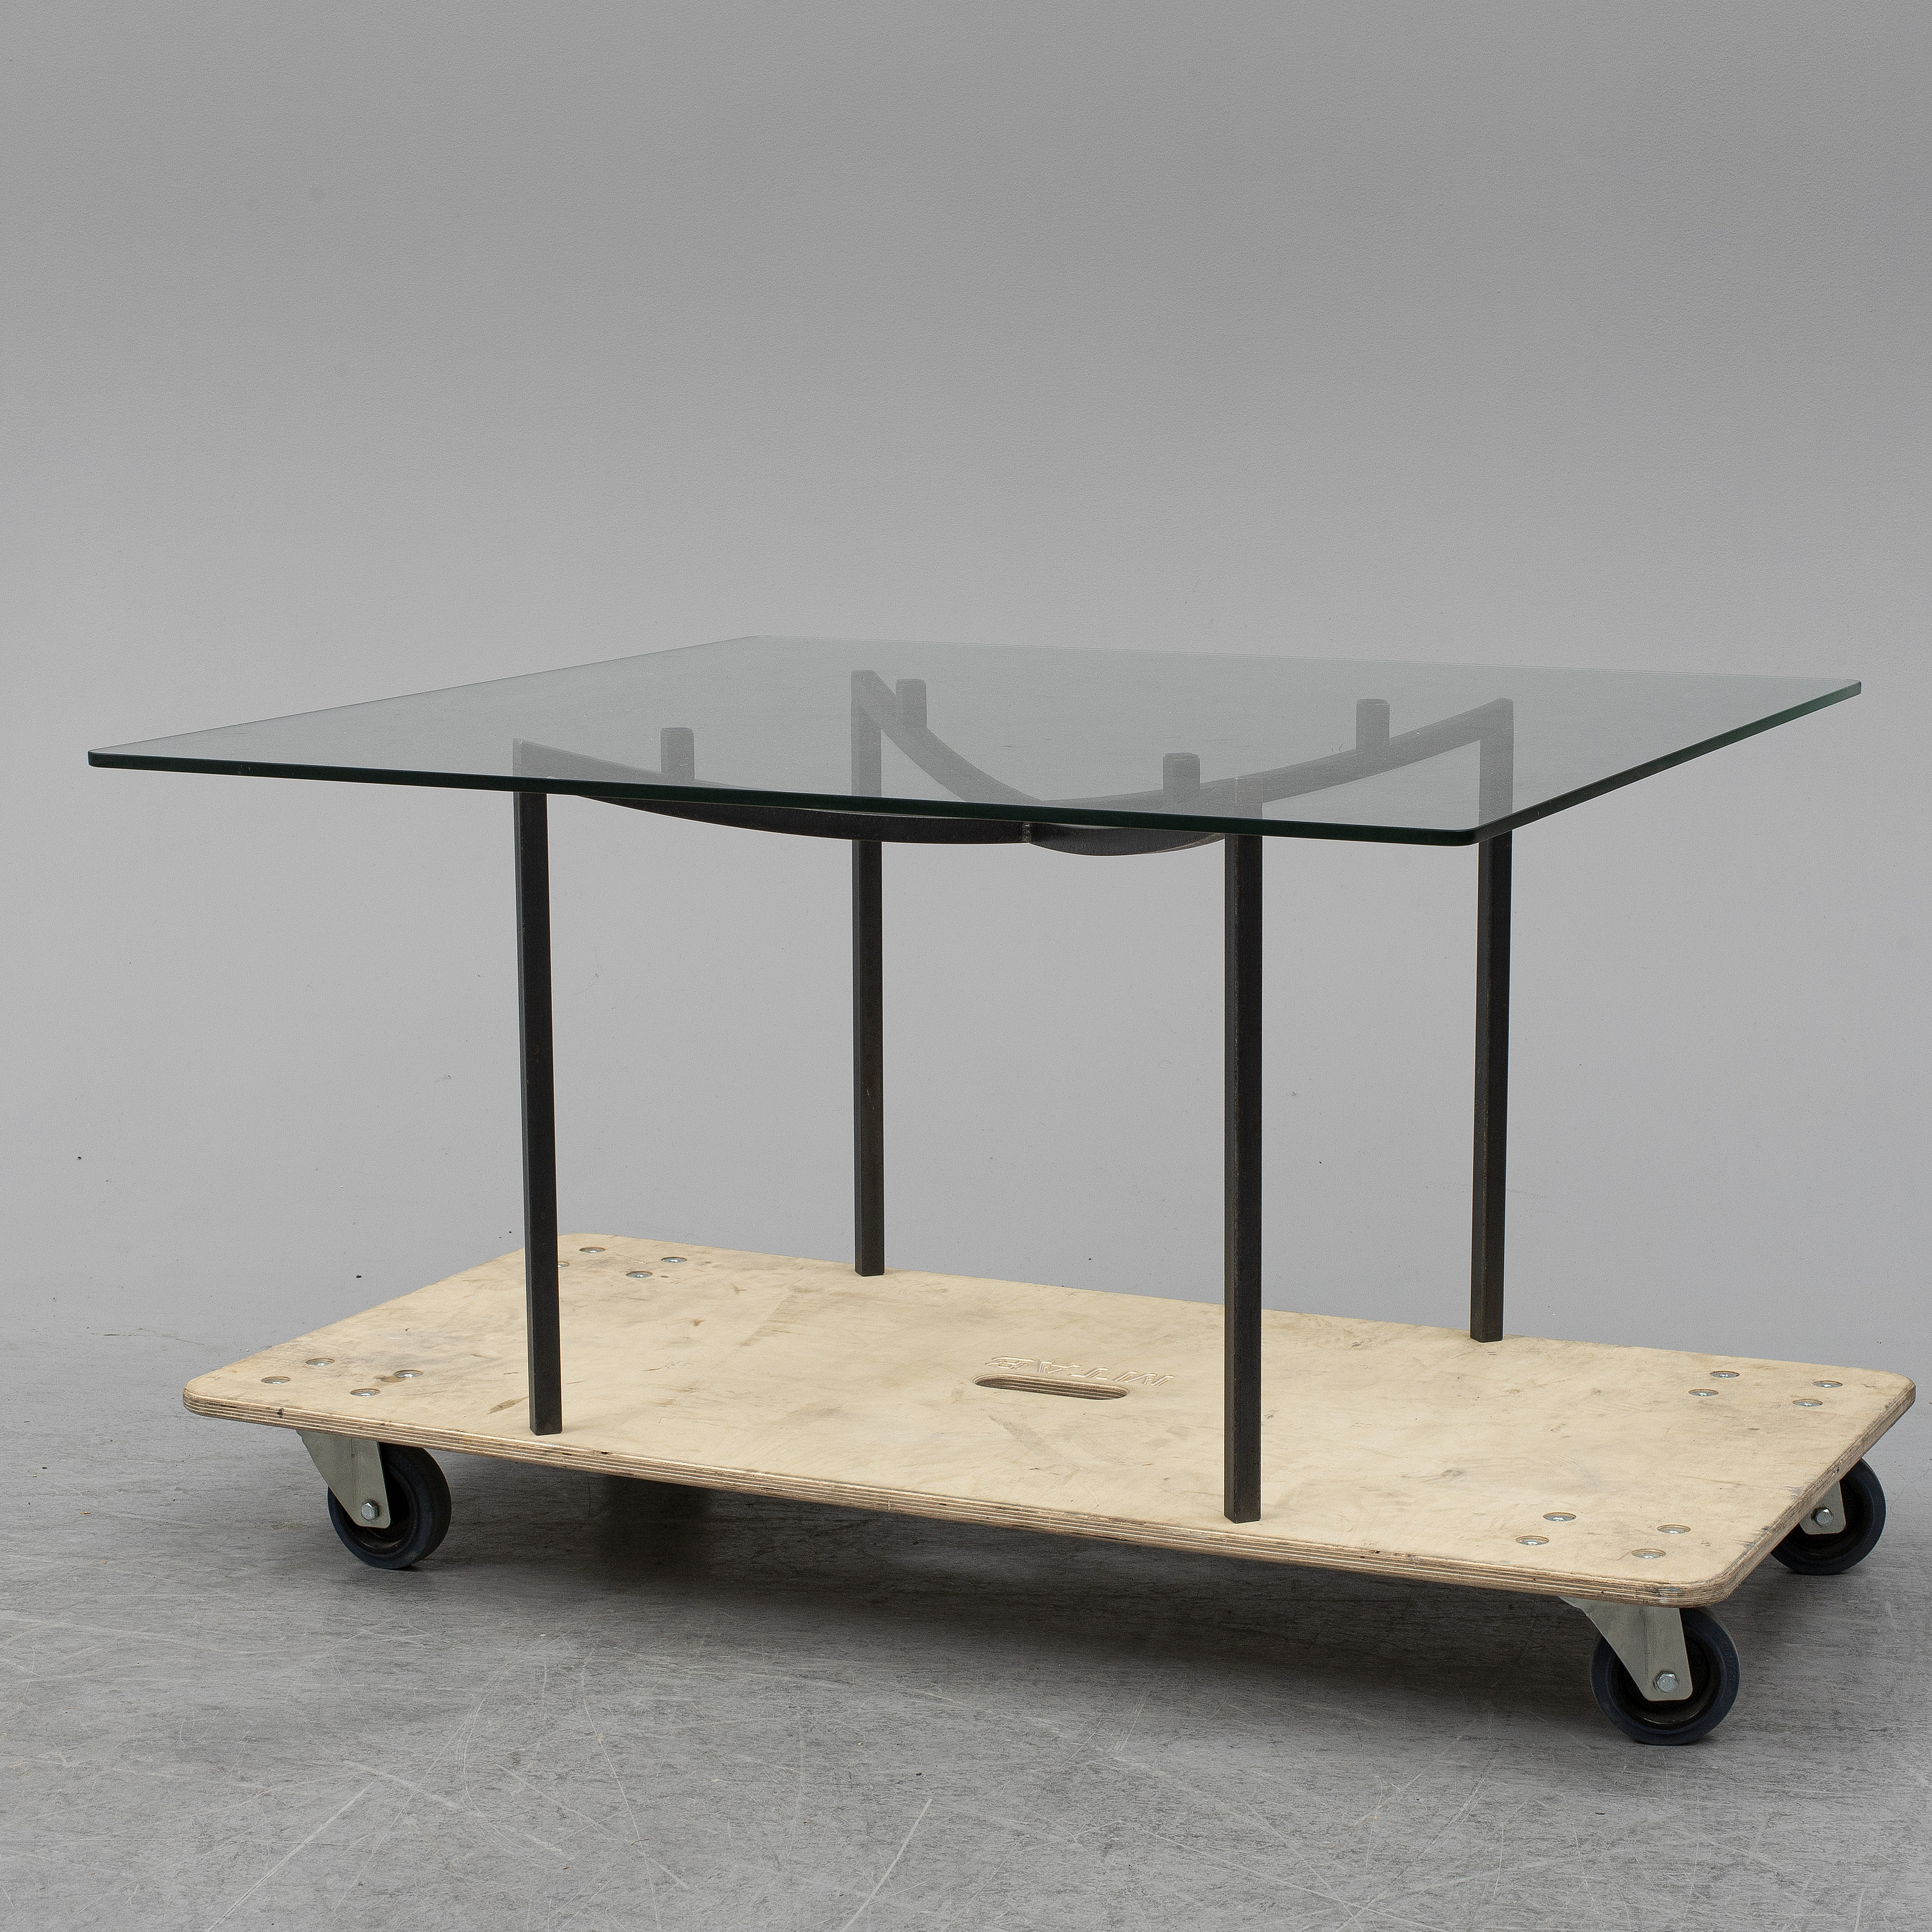 - GEORG TOTH, An Iron And Glass Coffee Table, Signed G. Toth And